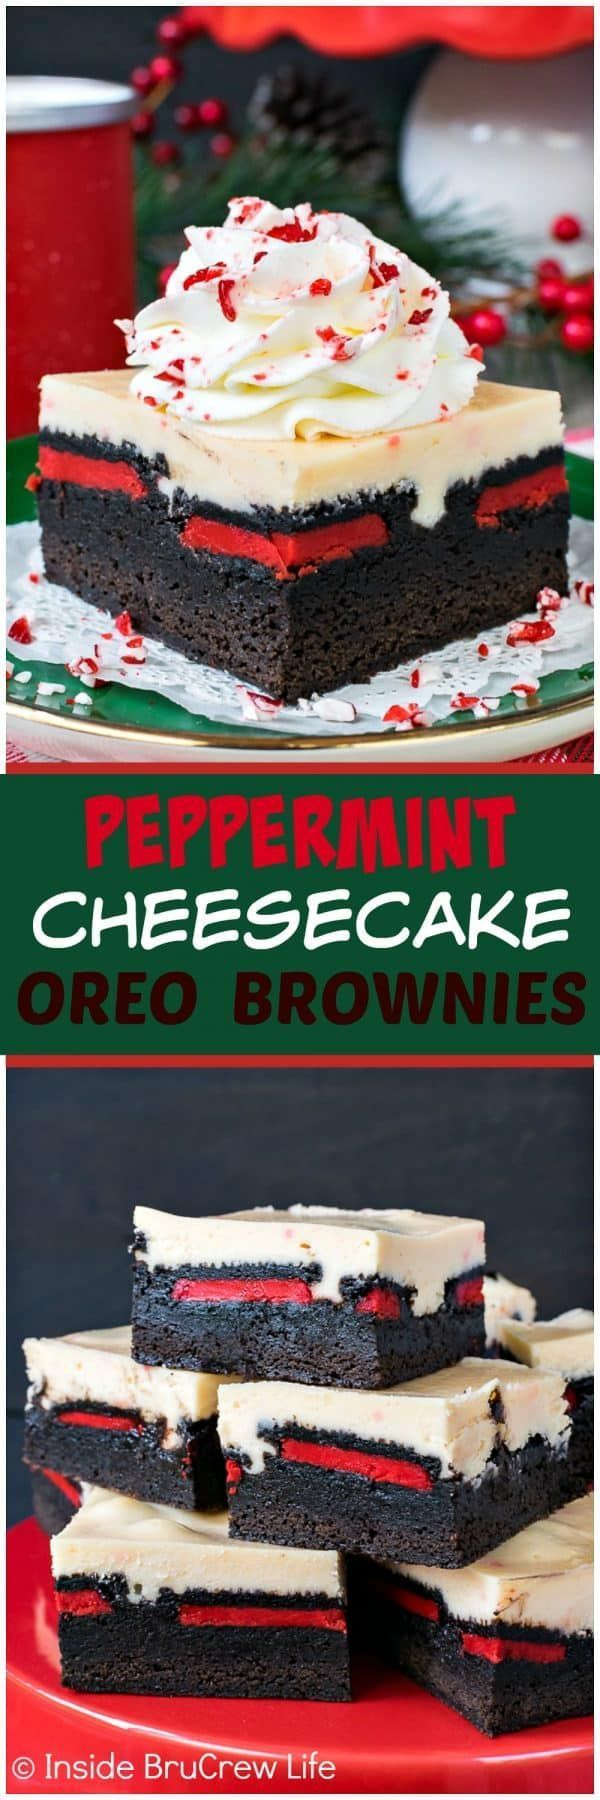 Peppermint Cheesecake Oreo Brownies. #Christmas #desserts